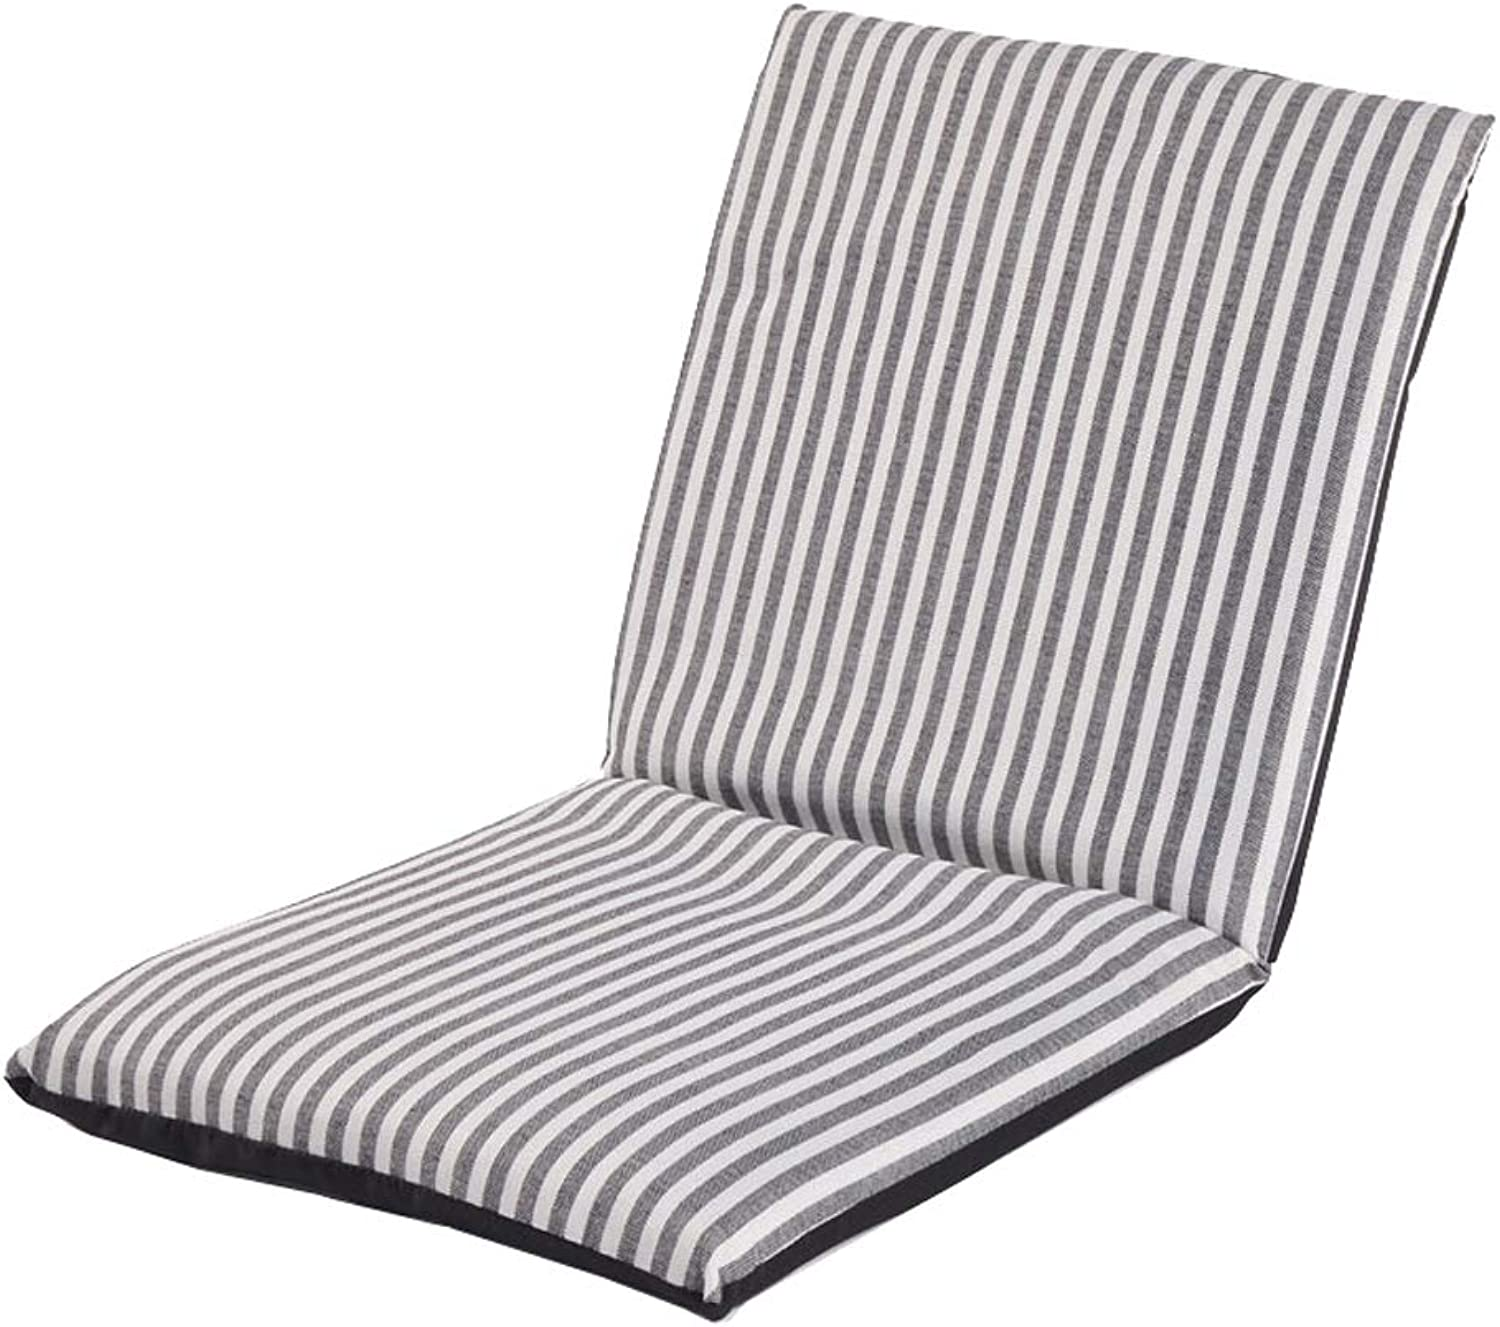 Lazy Couch, Striped Foldable Balcony Living Room Mat